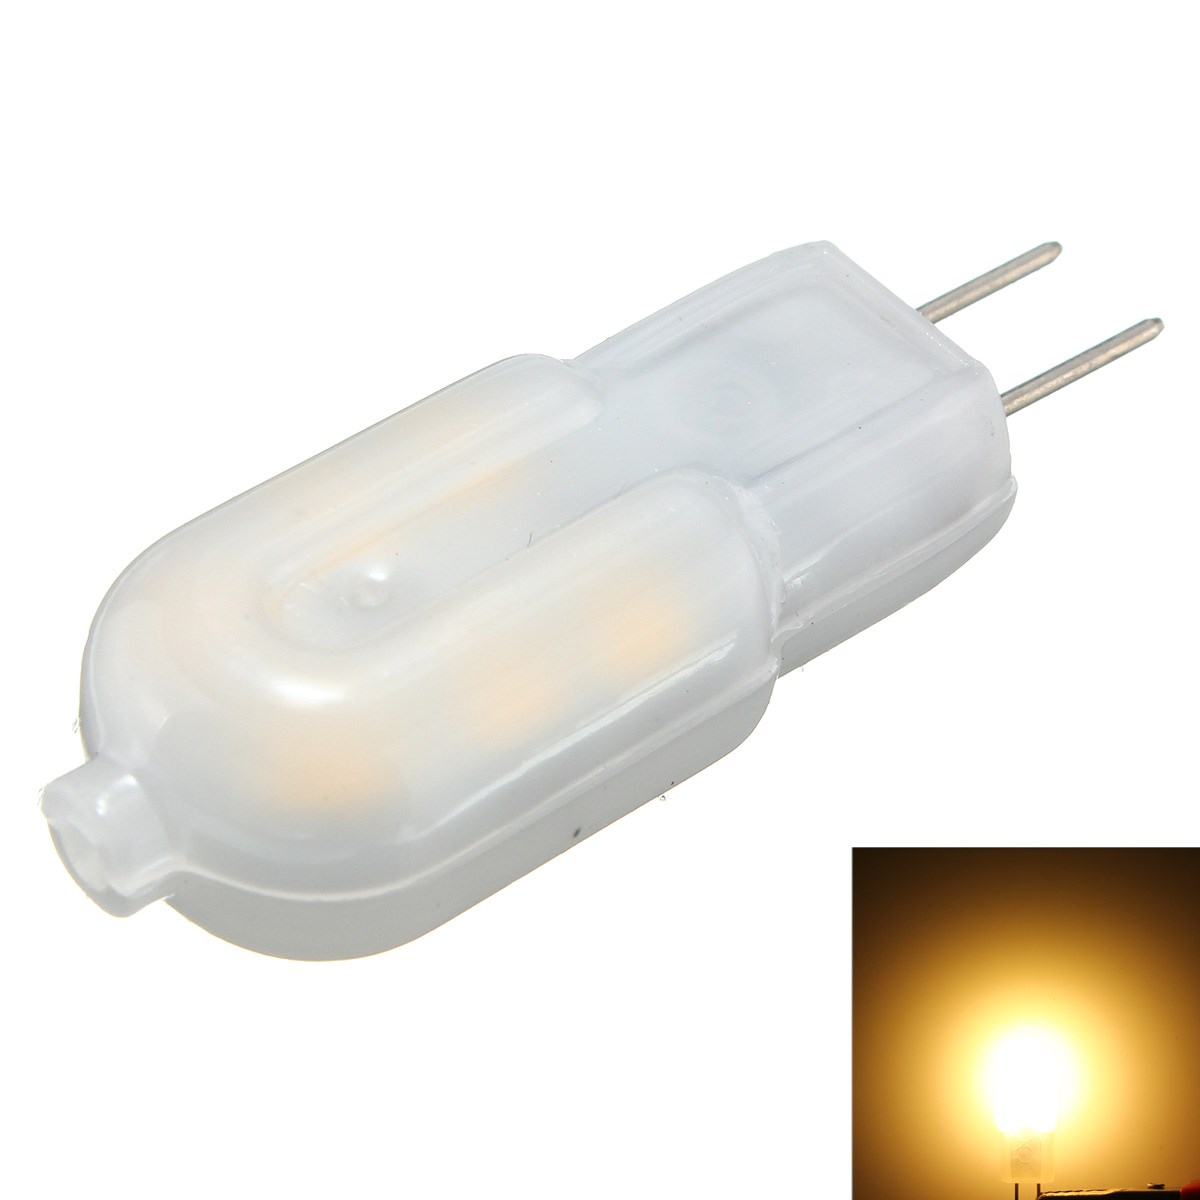 5PCS G4 2W Non-dimmable SMD2835 Warm White LED Light Bulb for Indoor Home Decor DC12V